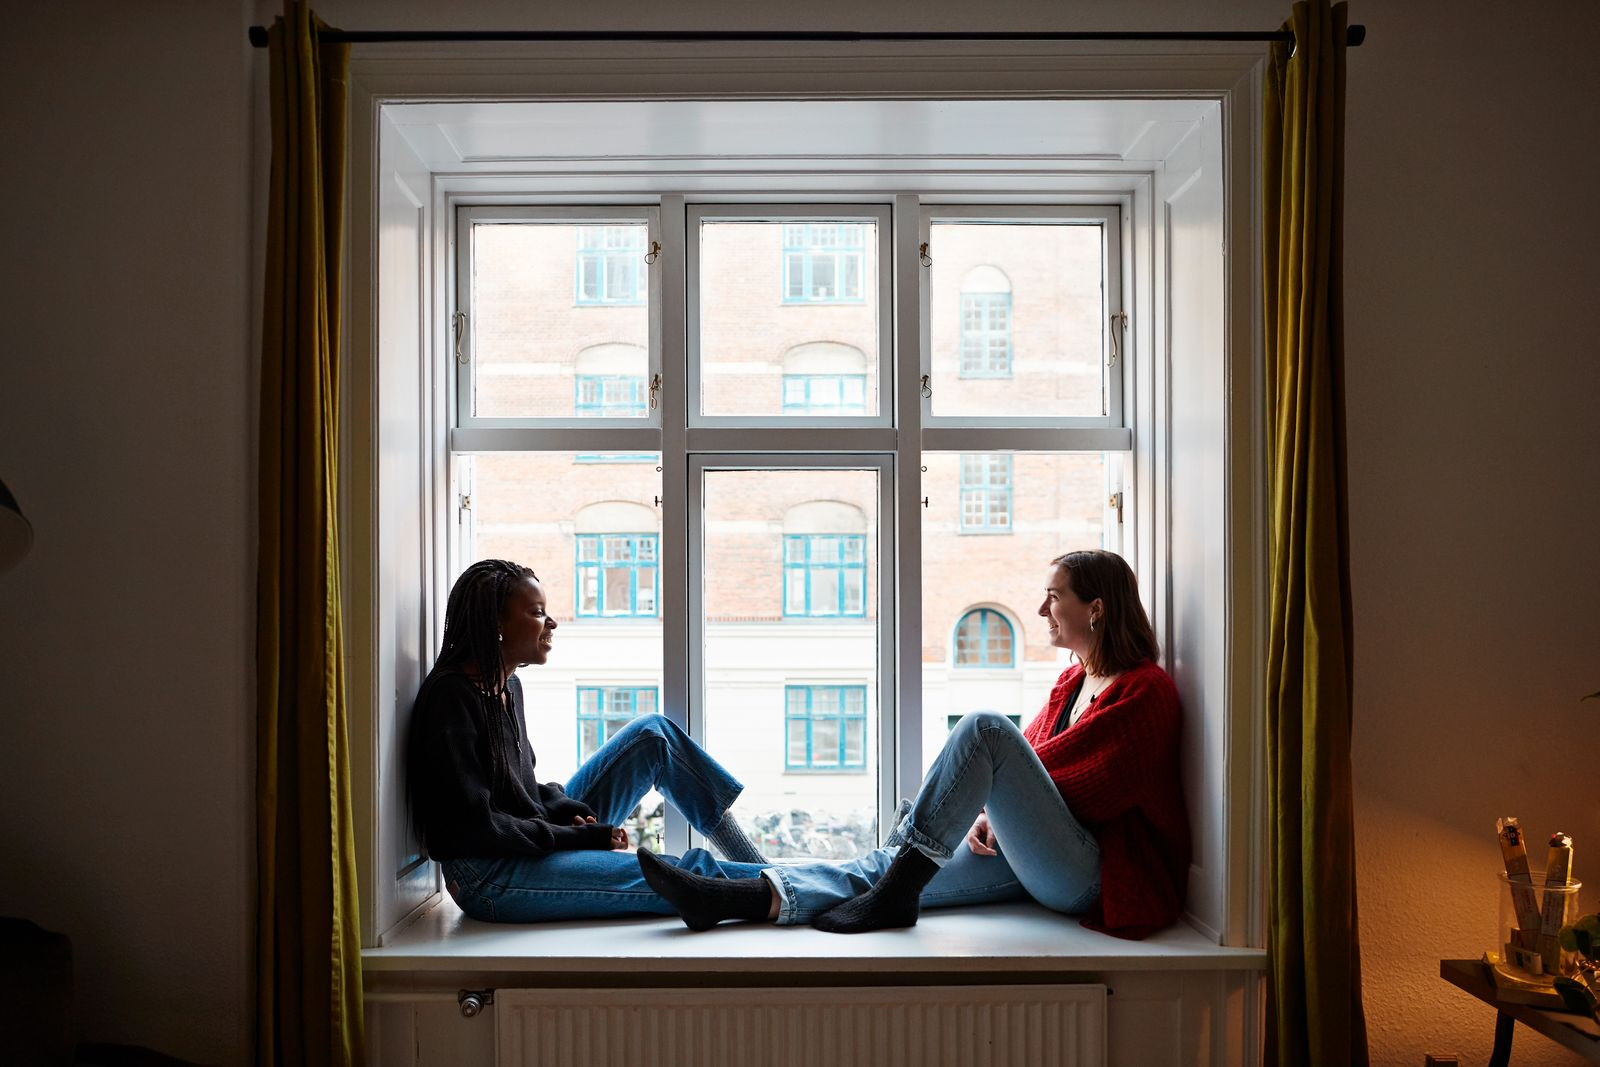 Young female roommates talking in apartment window